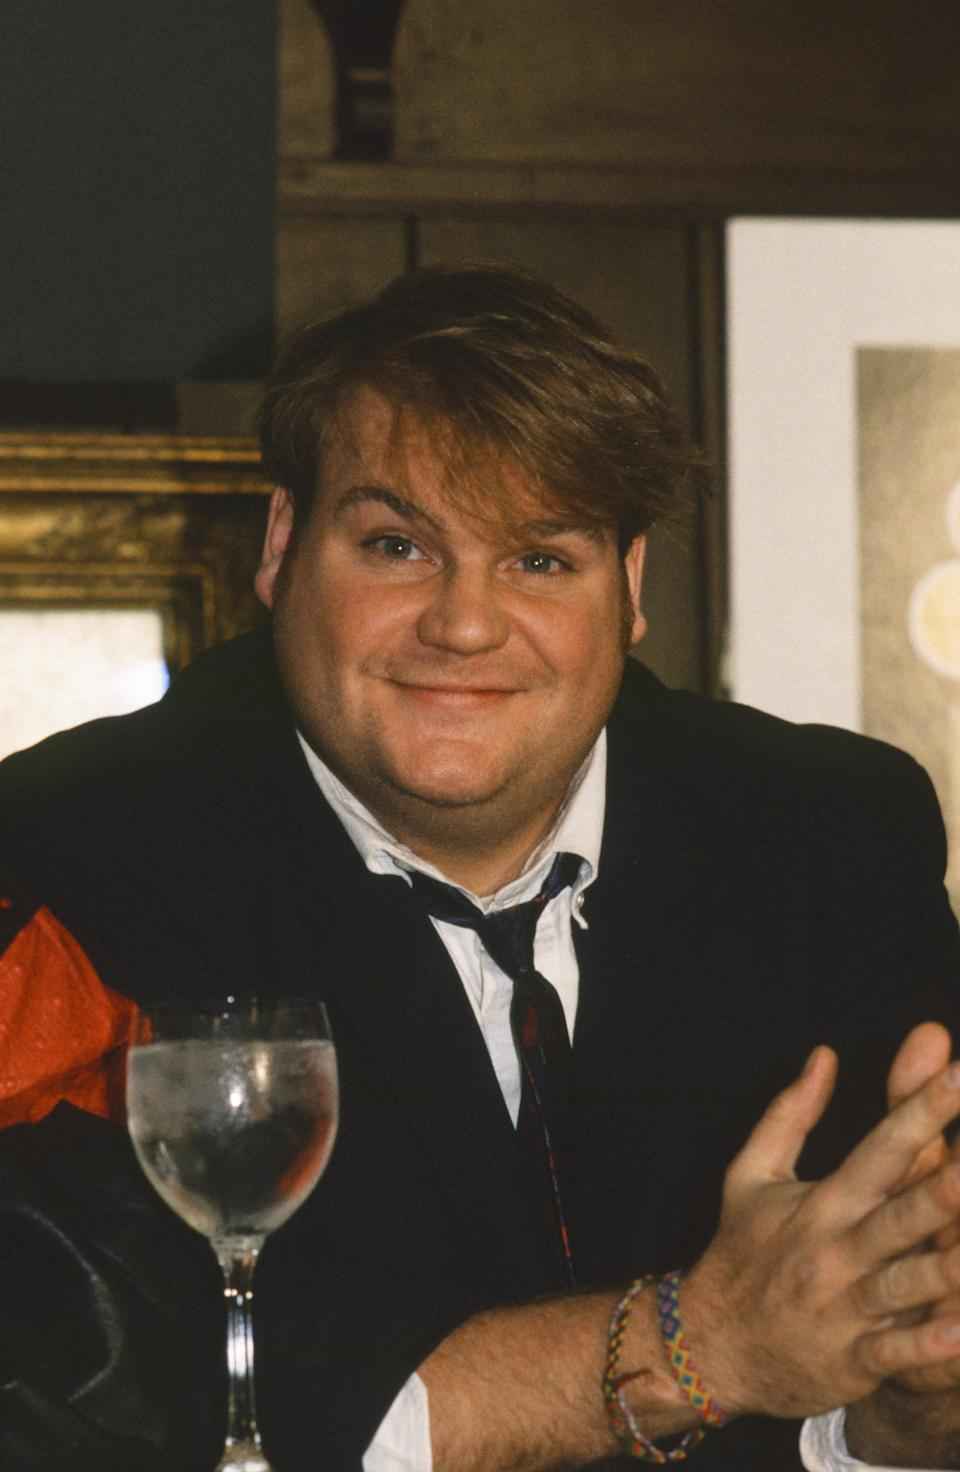 SATURDAY NIGHT LIVE -- Cast Press Conference -- Pictured: Chris Farley on September 18, 1990 -- Photo by: Alan Singer/NBC/NBCU Photo Bank